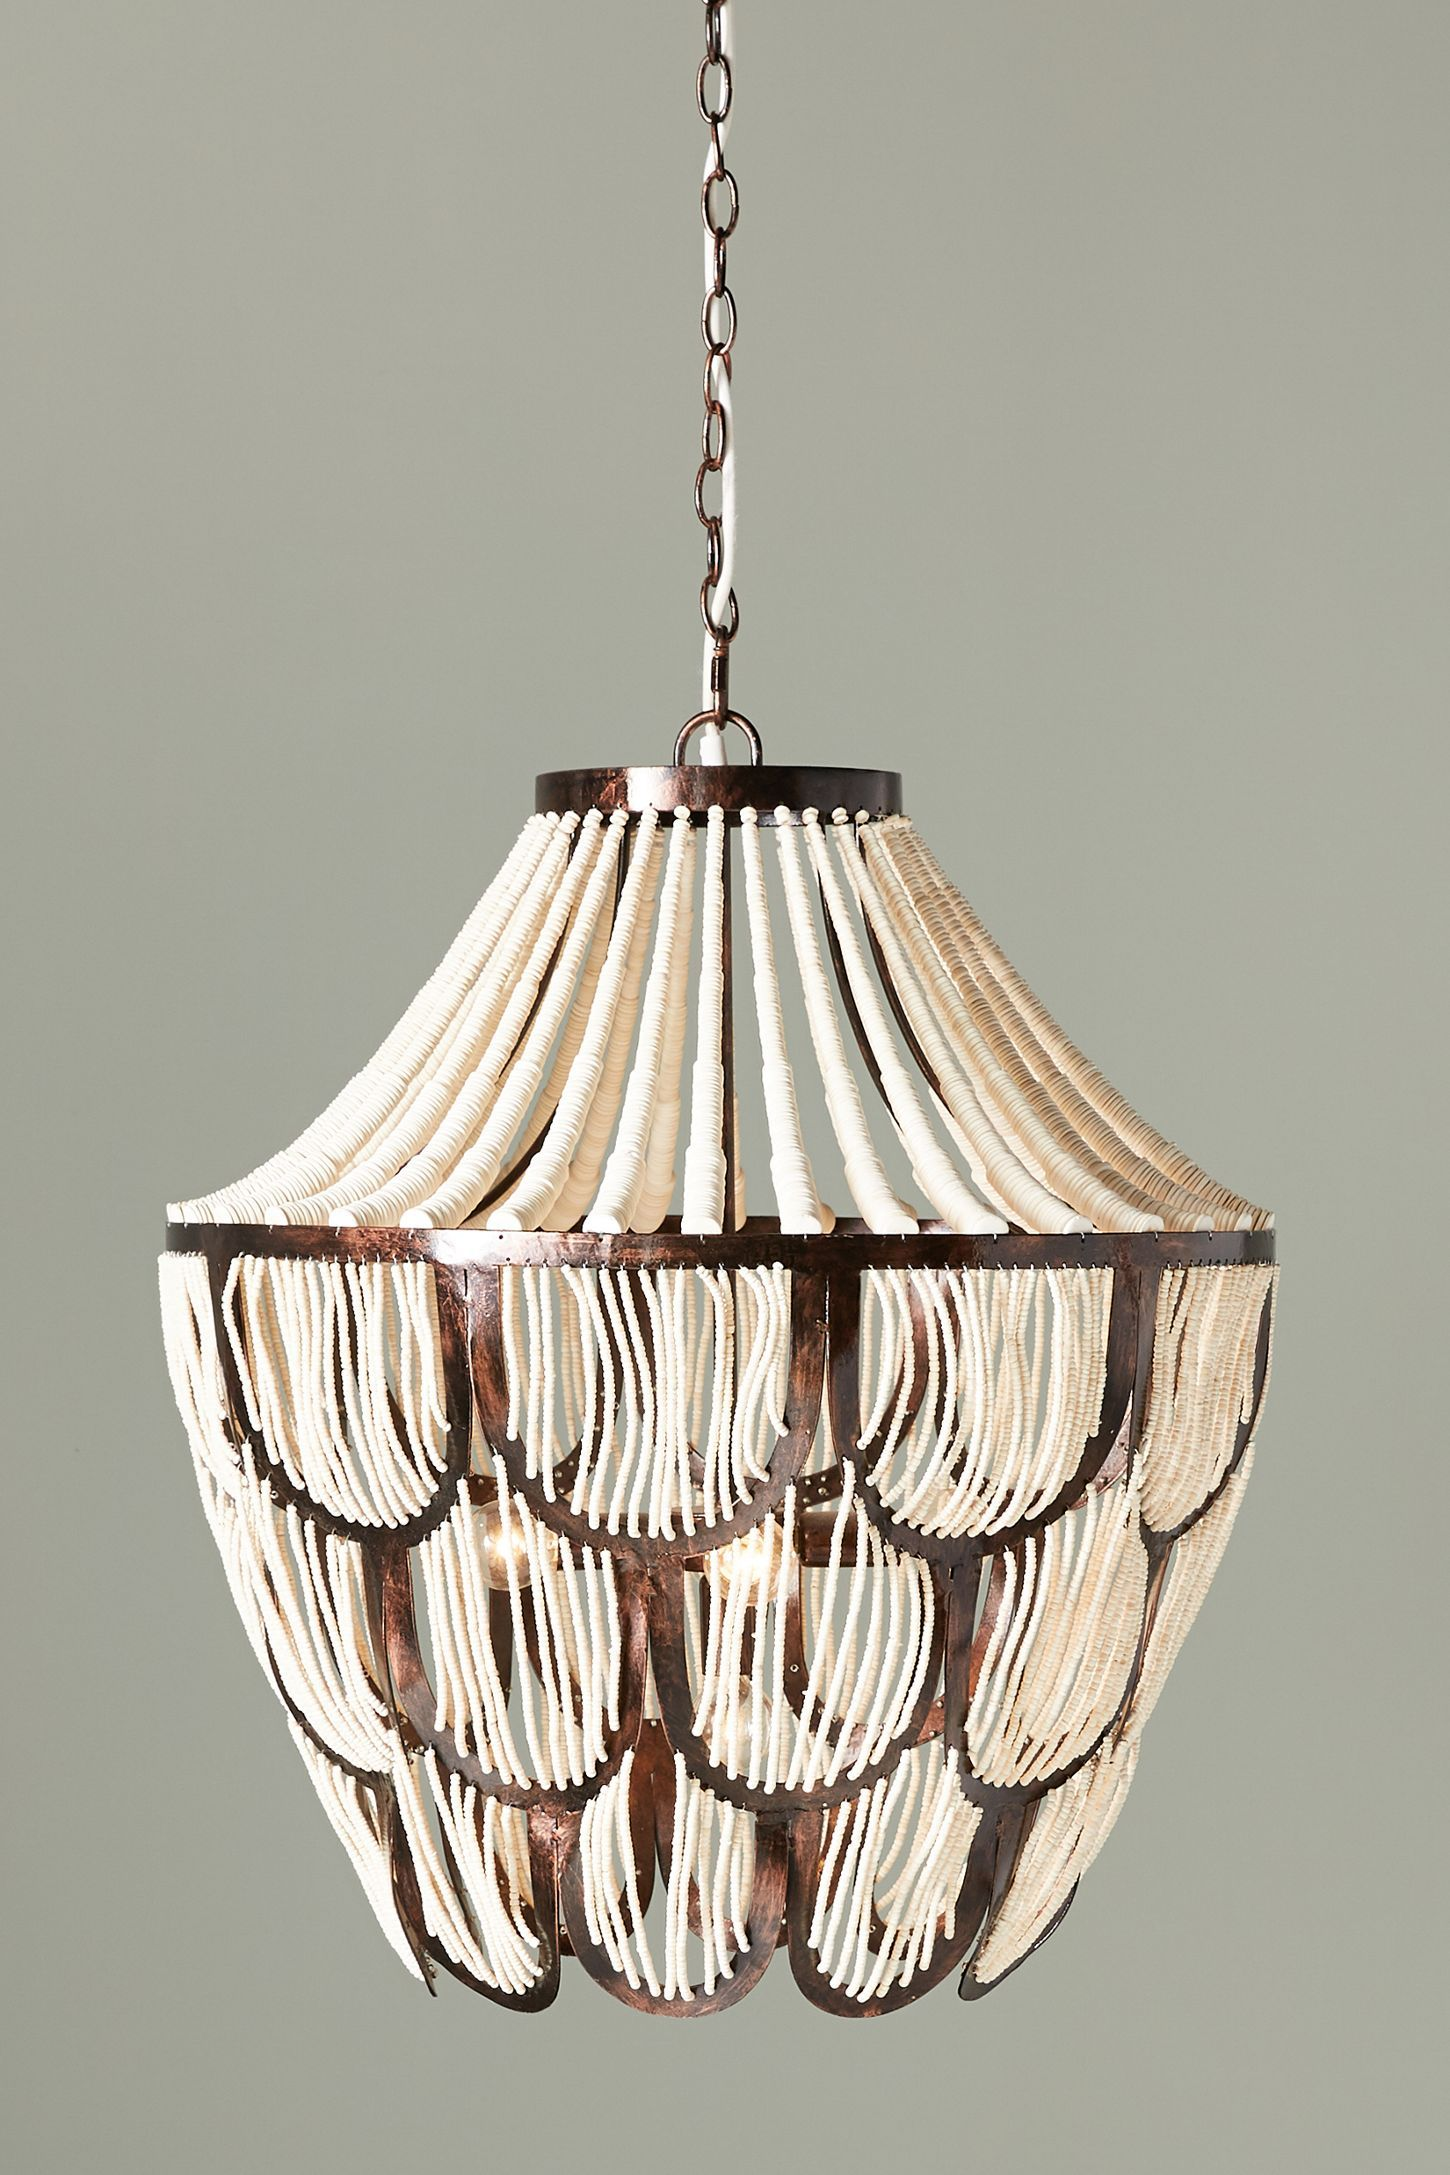 Imarni chandelier anthropologie wood bead chandelier chandeliers electrical outlets foyer lighting